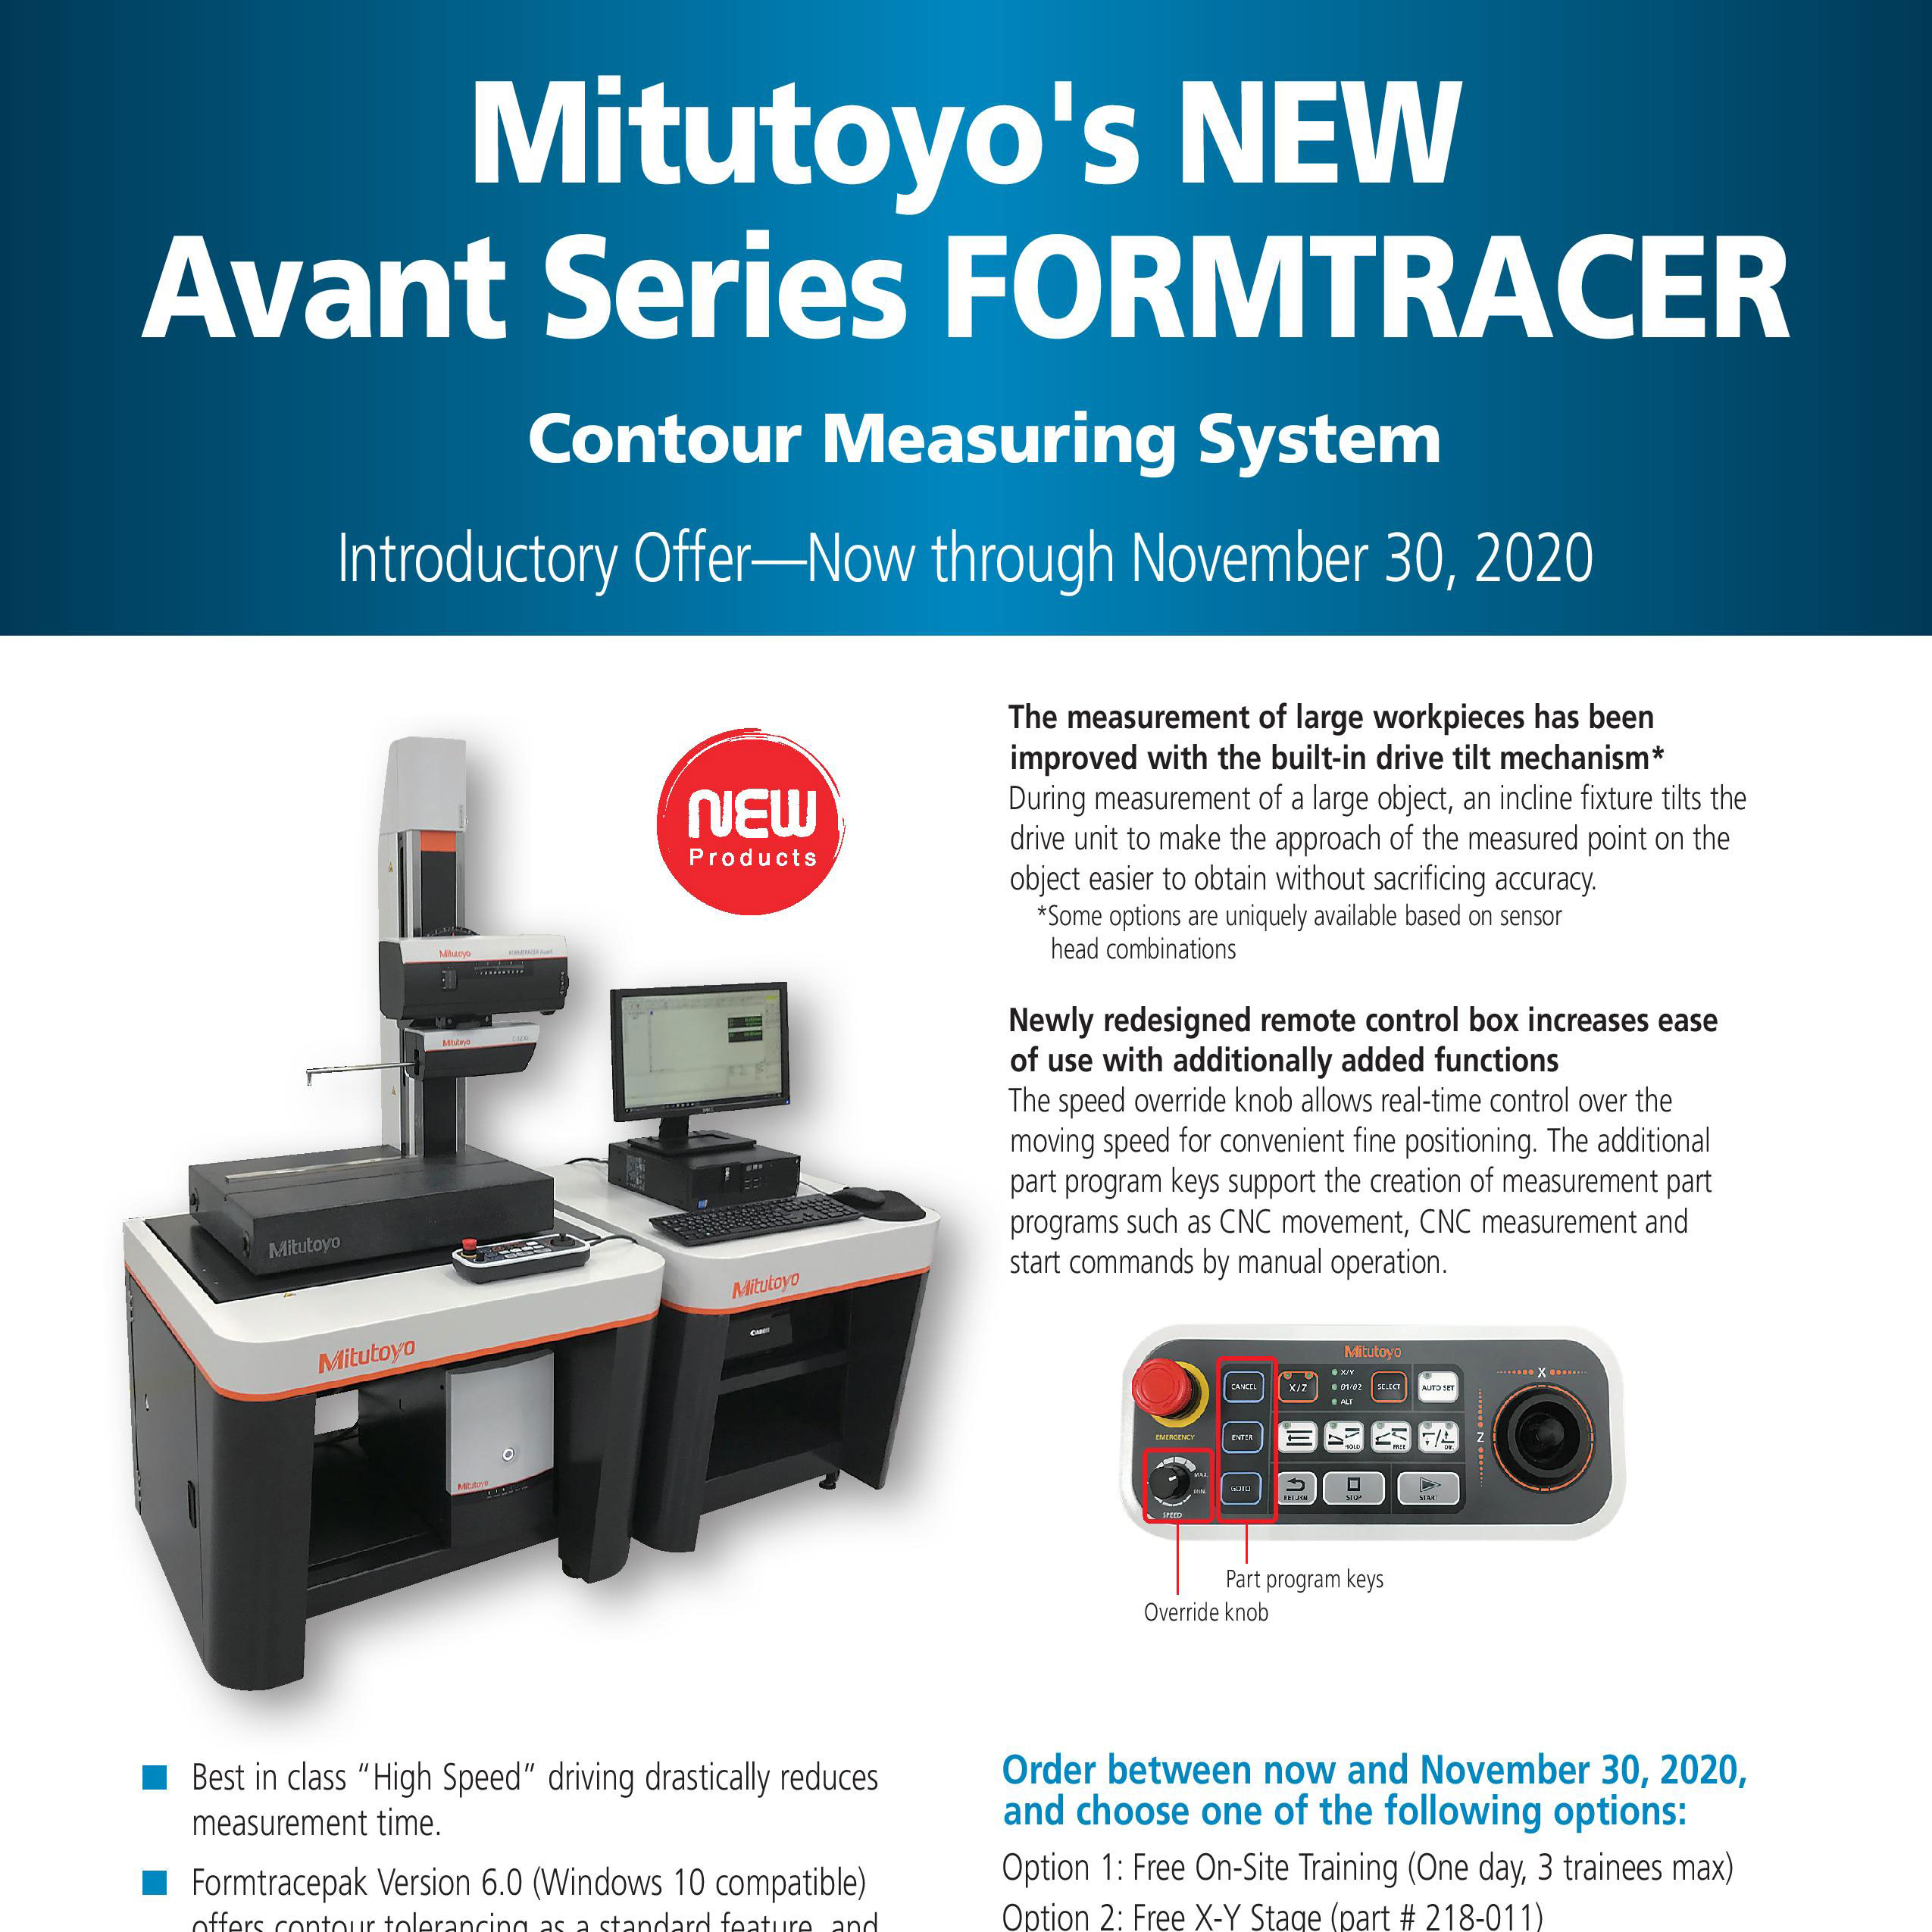 Mitutoyo's NEW Avant Series FORMTRACER